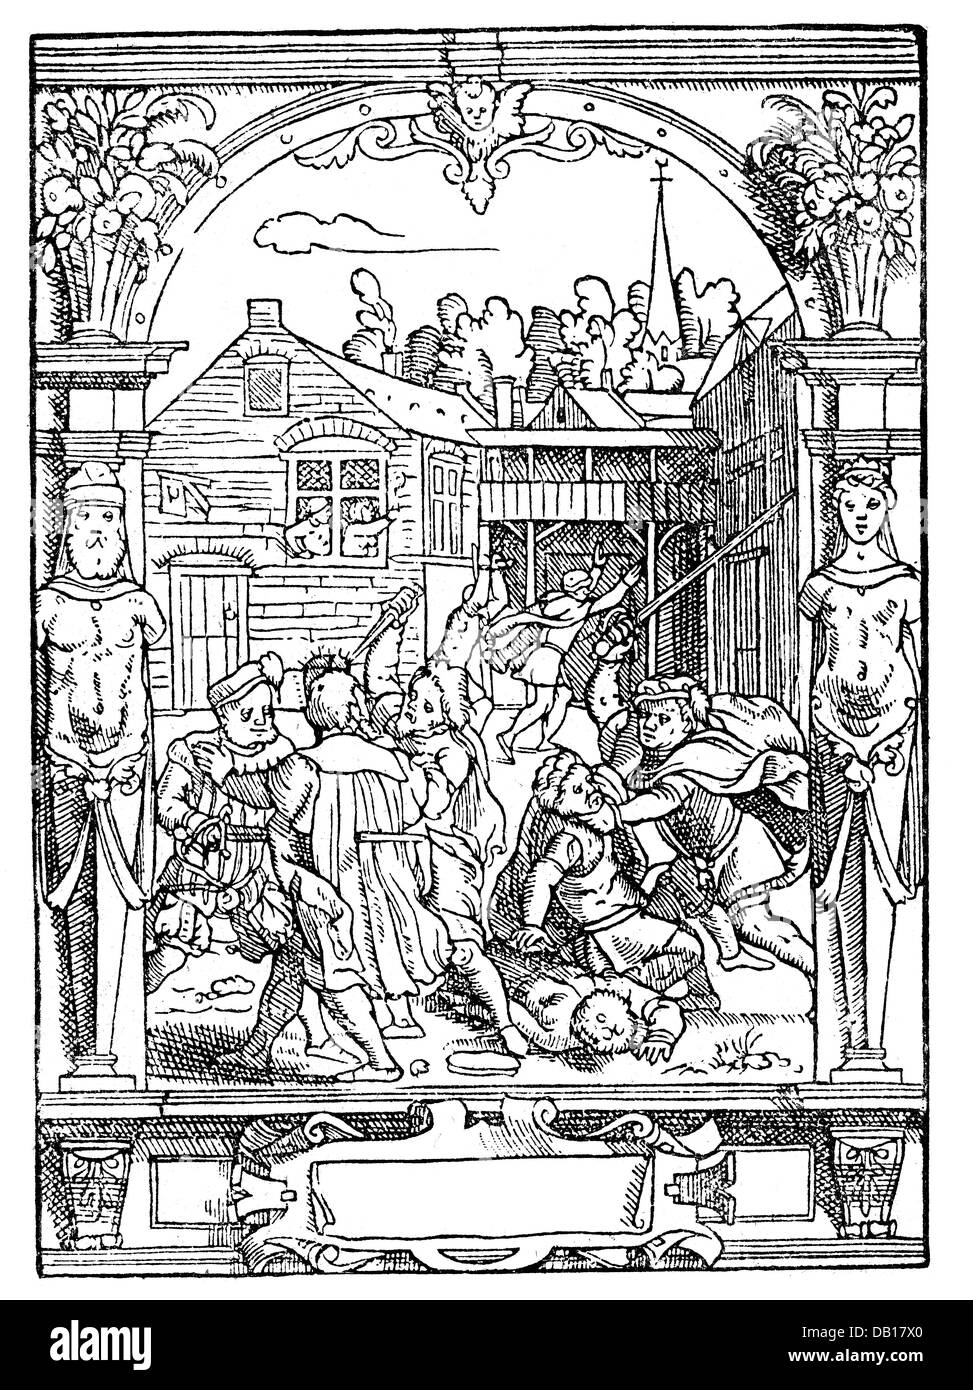 Revolt of the Brotherhoods in Valencia 1520 - 1521, Artist's Copyright has not to be cleared Stock Photo